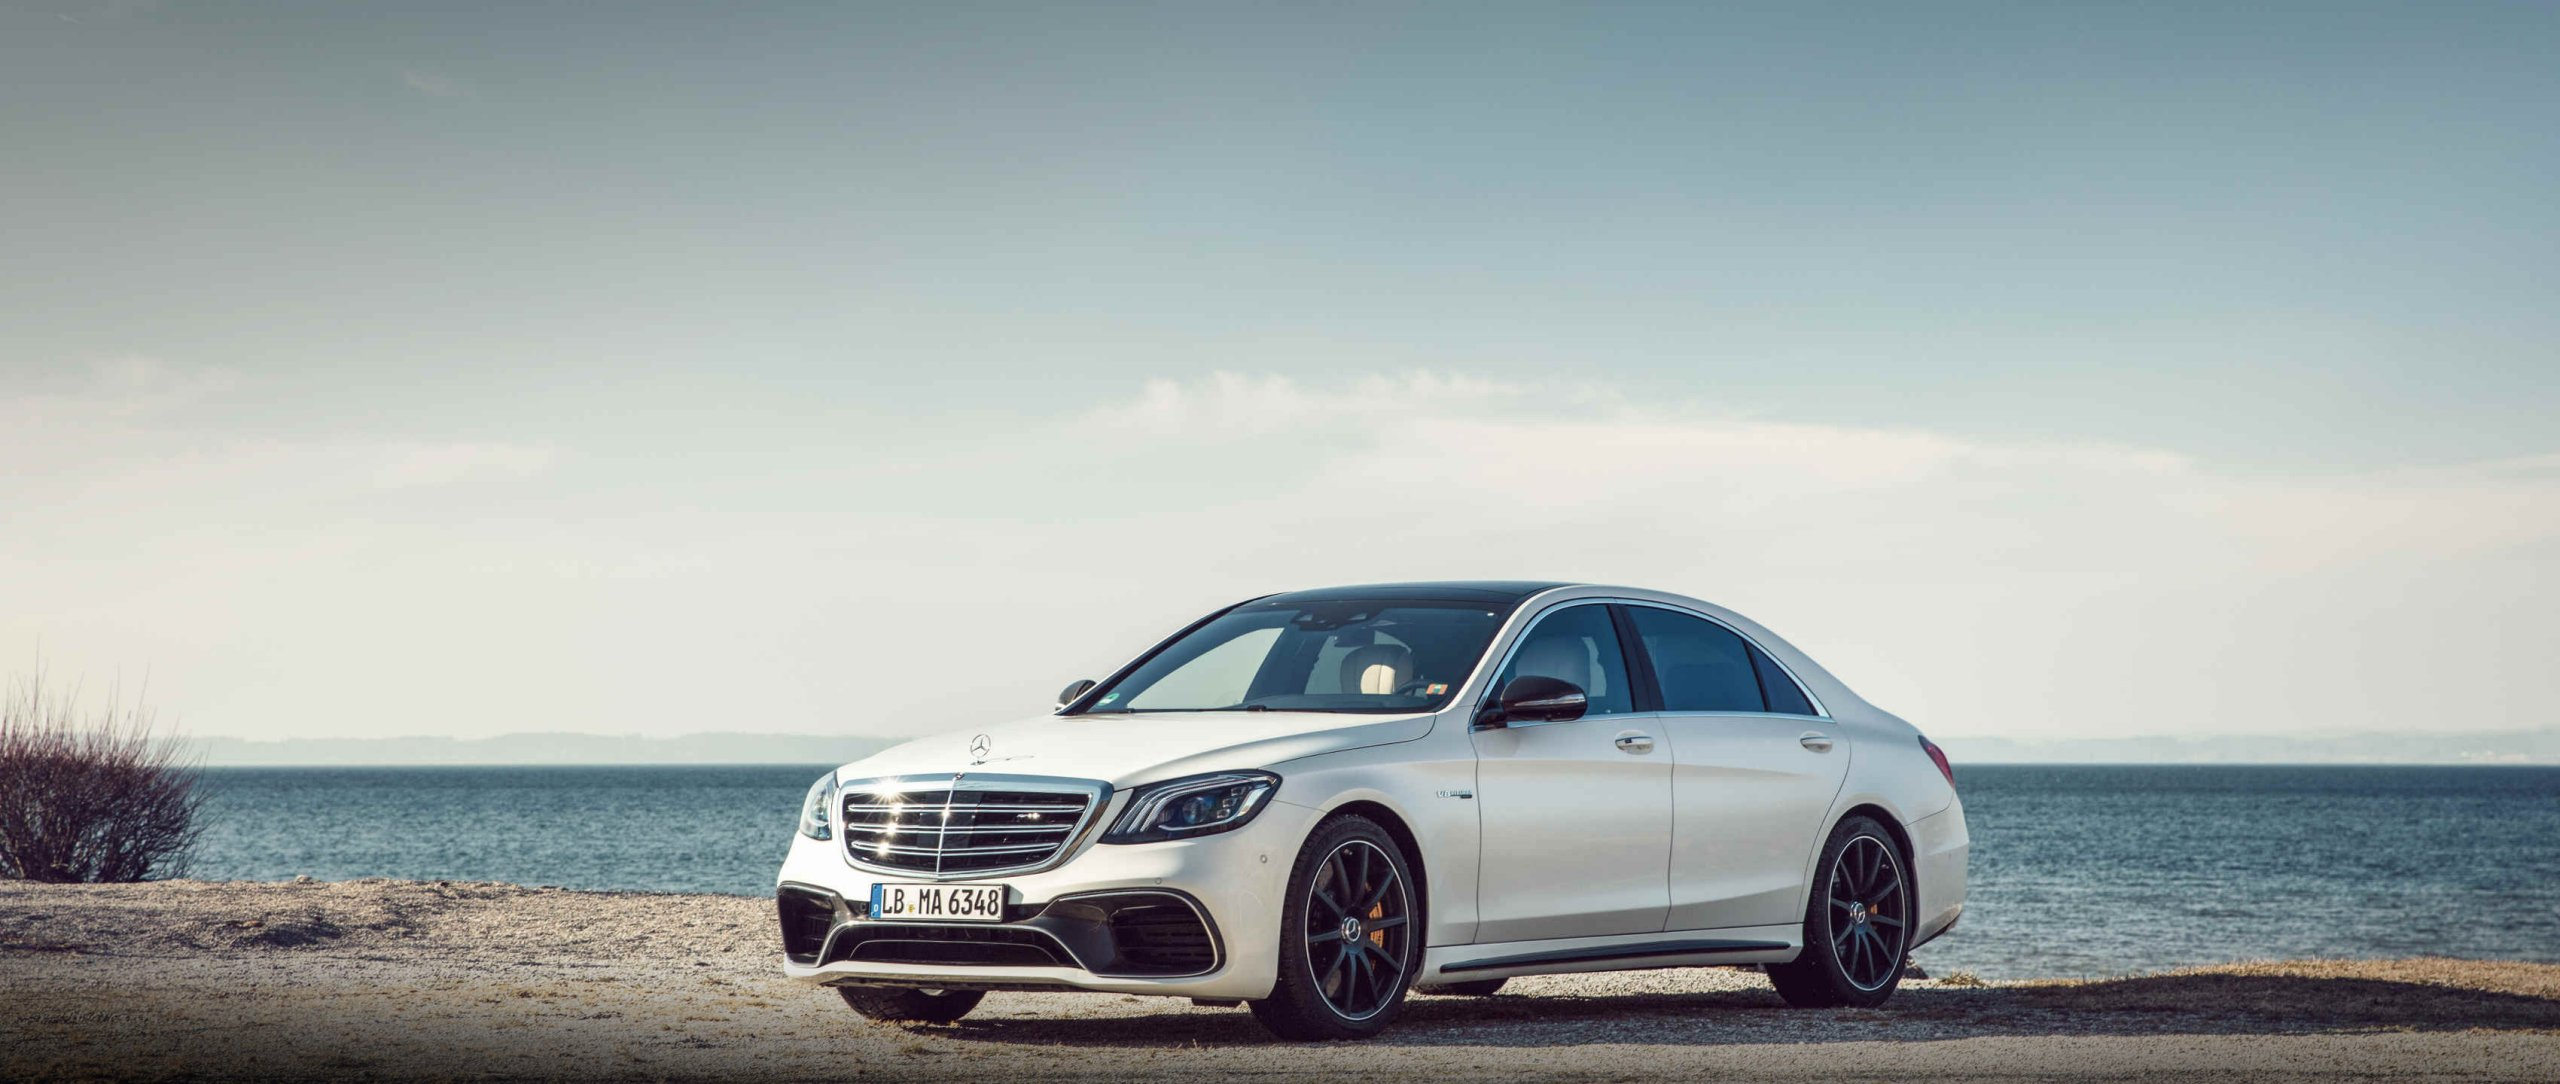 Mercedes-AMG S 63 4MATIC+ (V222) in designo diamond white bright with 4.0-litre V8 biturbo engine.